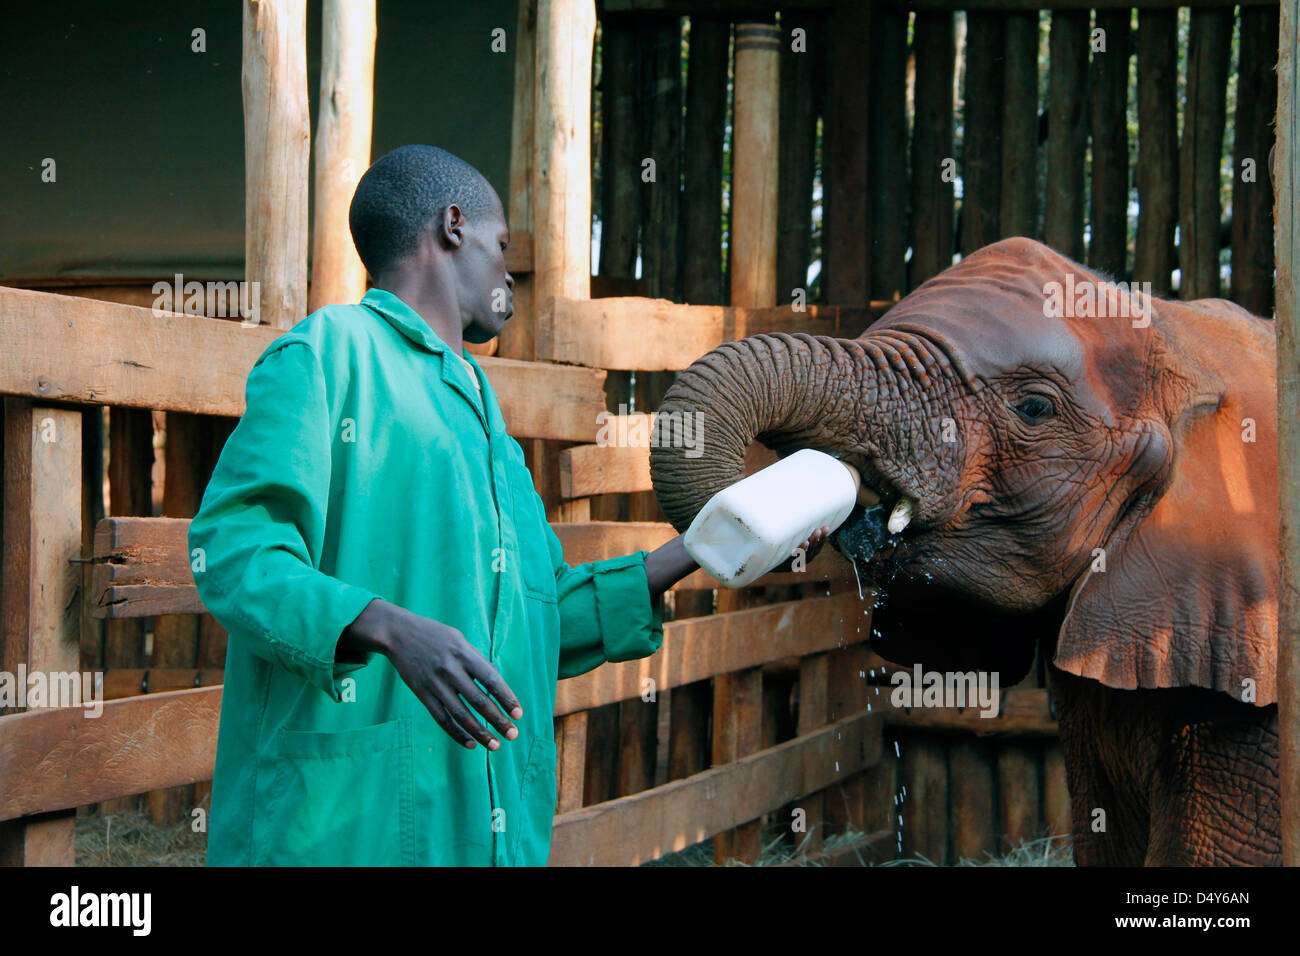 Africa, Kenya, Nairobi. Caretaker bottle feeds orphaned baby elephant at David Sheldrick's Wildlife Trust. - Stock Image